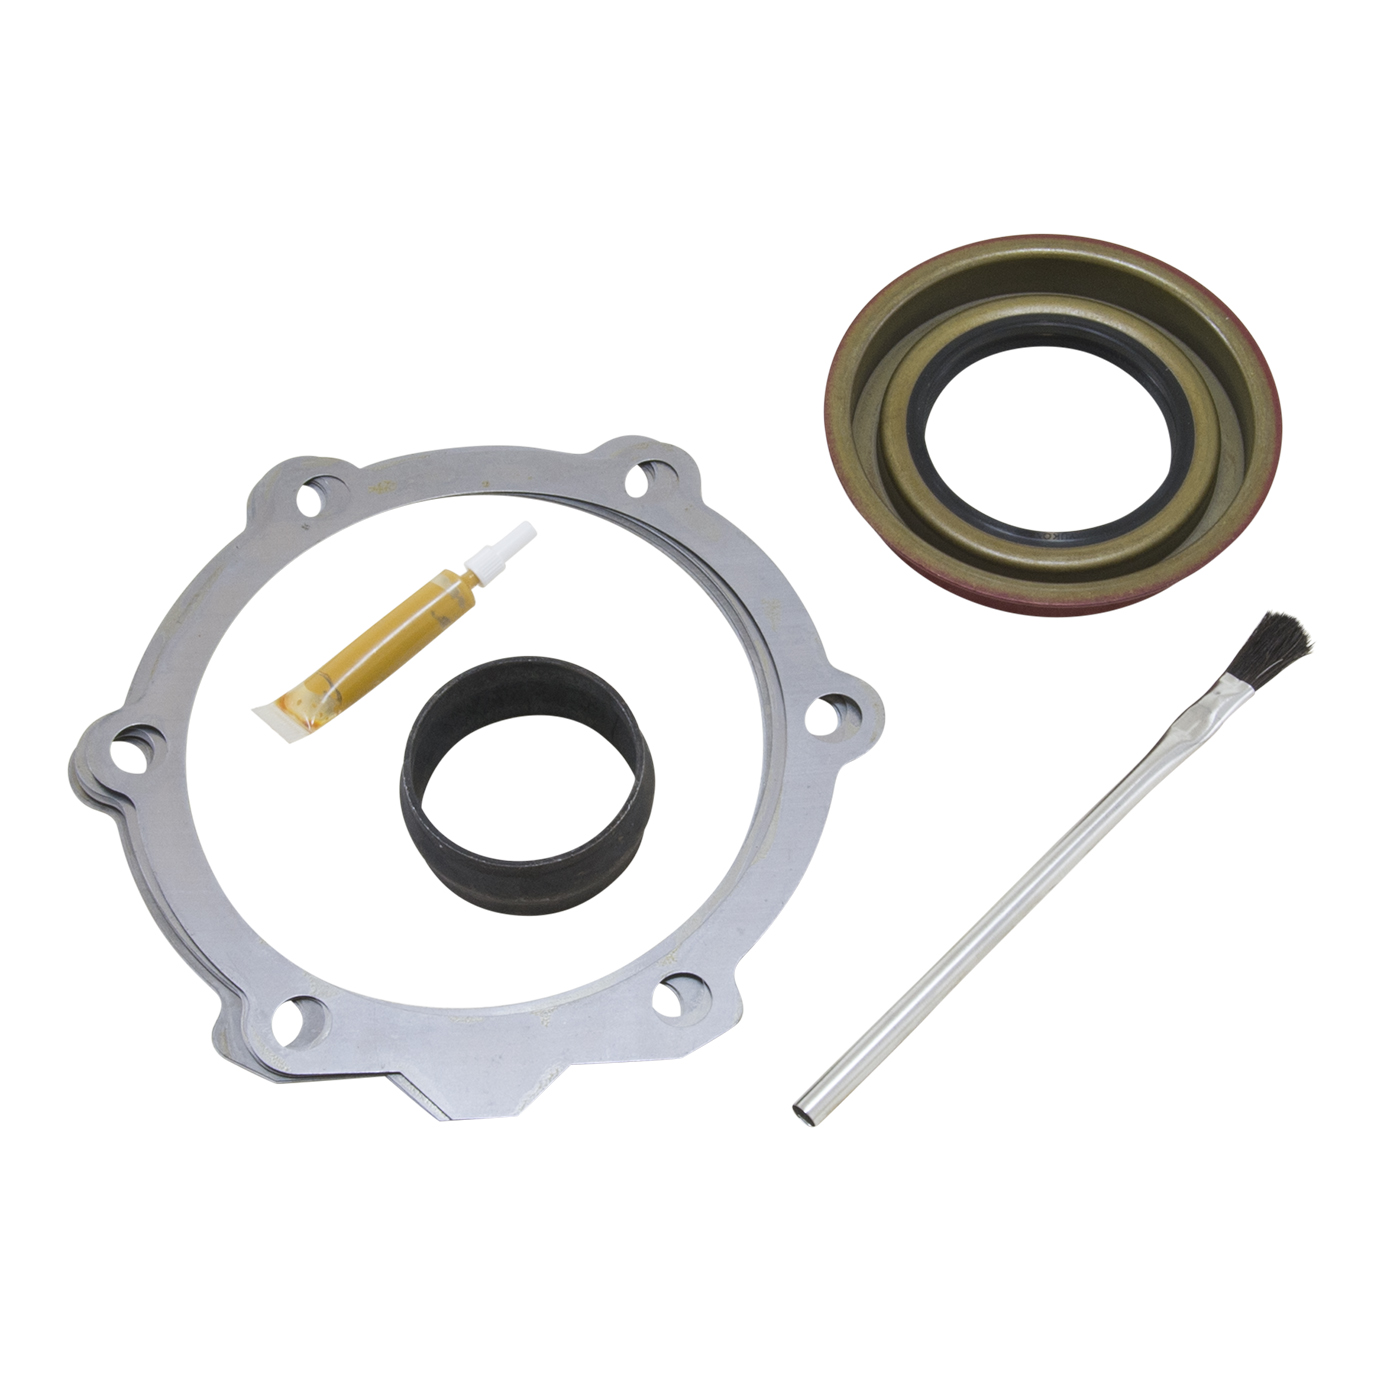 MK GM7.2IFS-L - Yukon Minor install kit for GM '83-'97 7.2